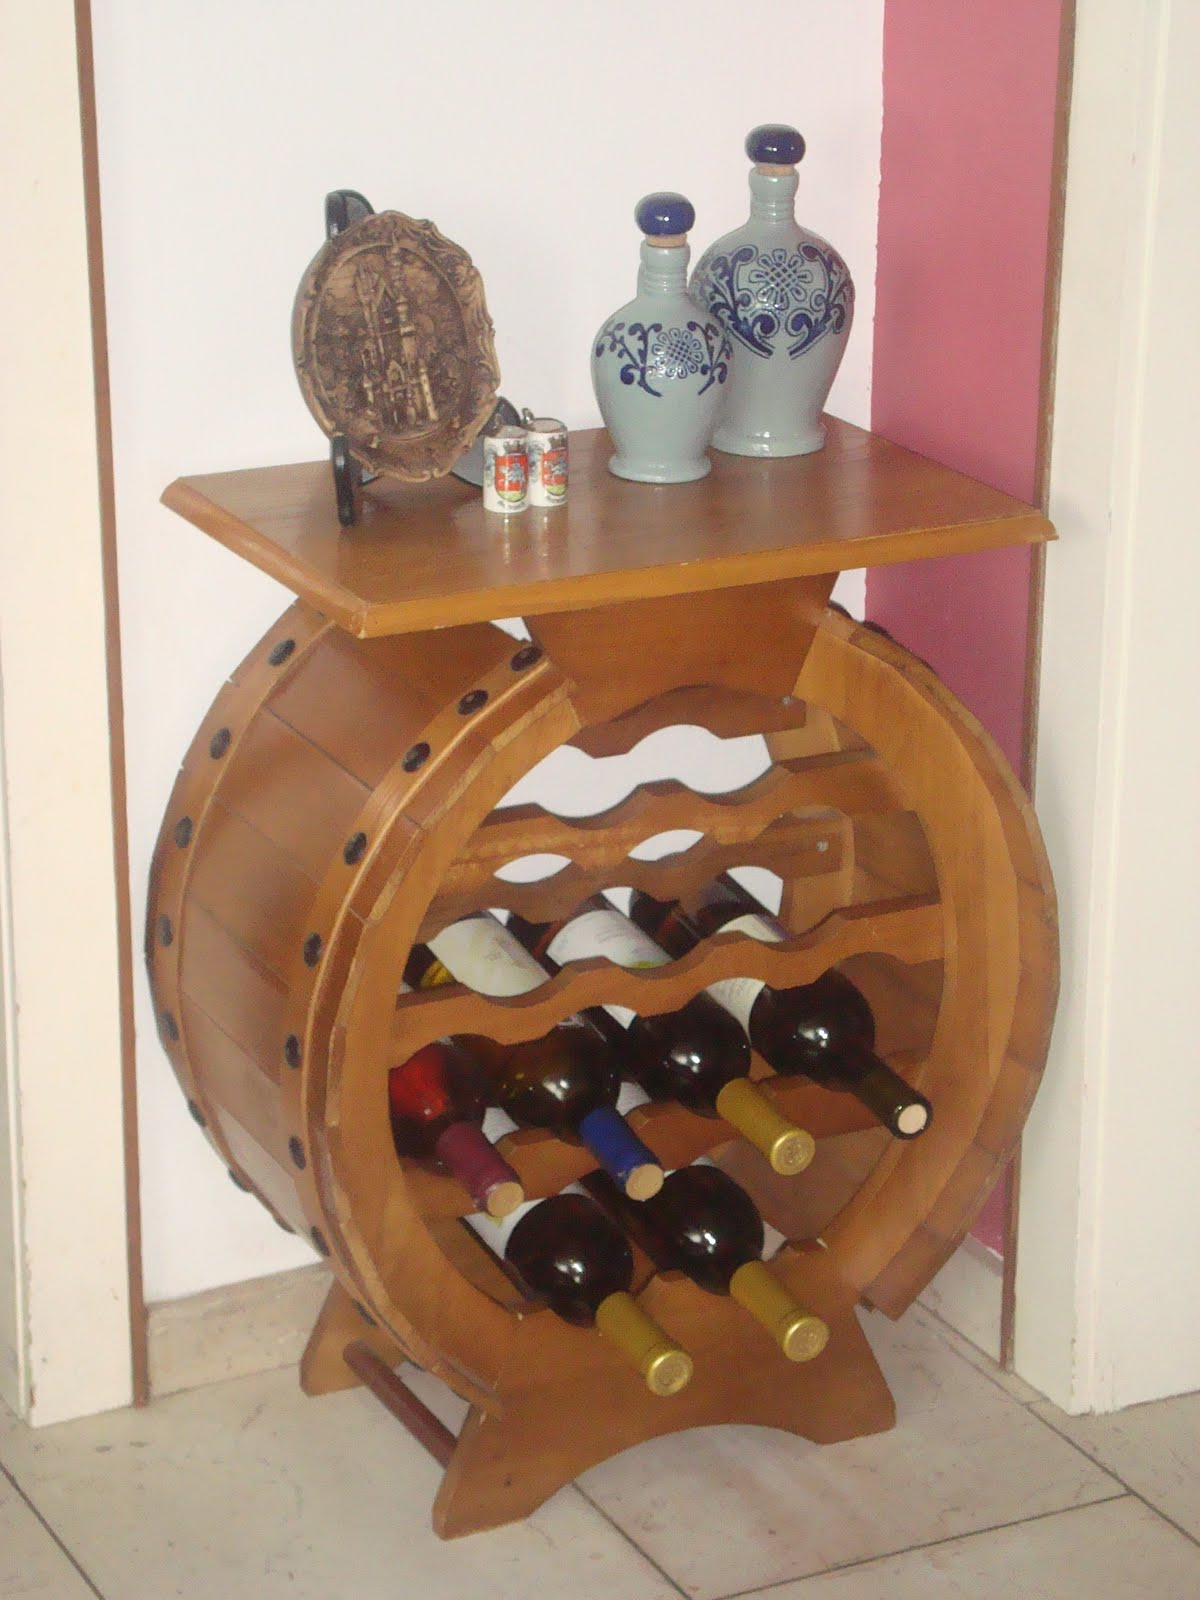 A Wine Rack I Got That Is Made From An Old Wine Barrel. I Picked It Up For  Only $50 Which I Think Is A Pretty Good Deal!